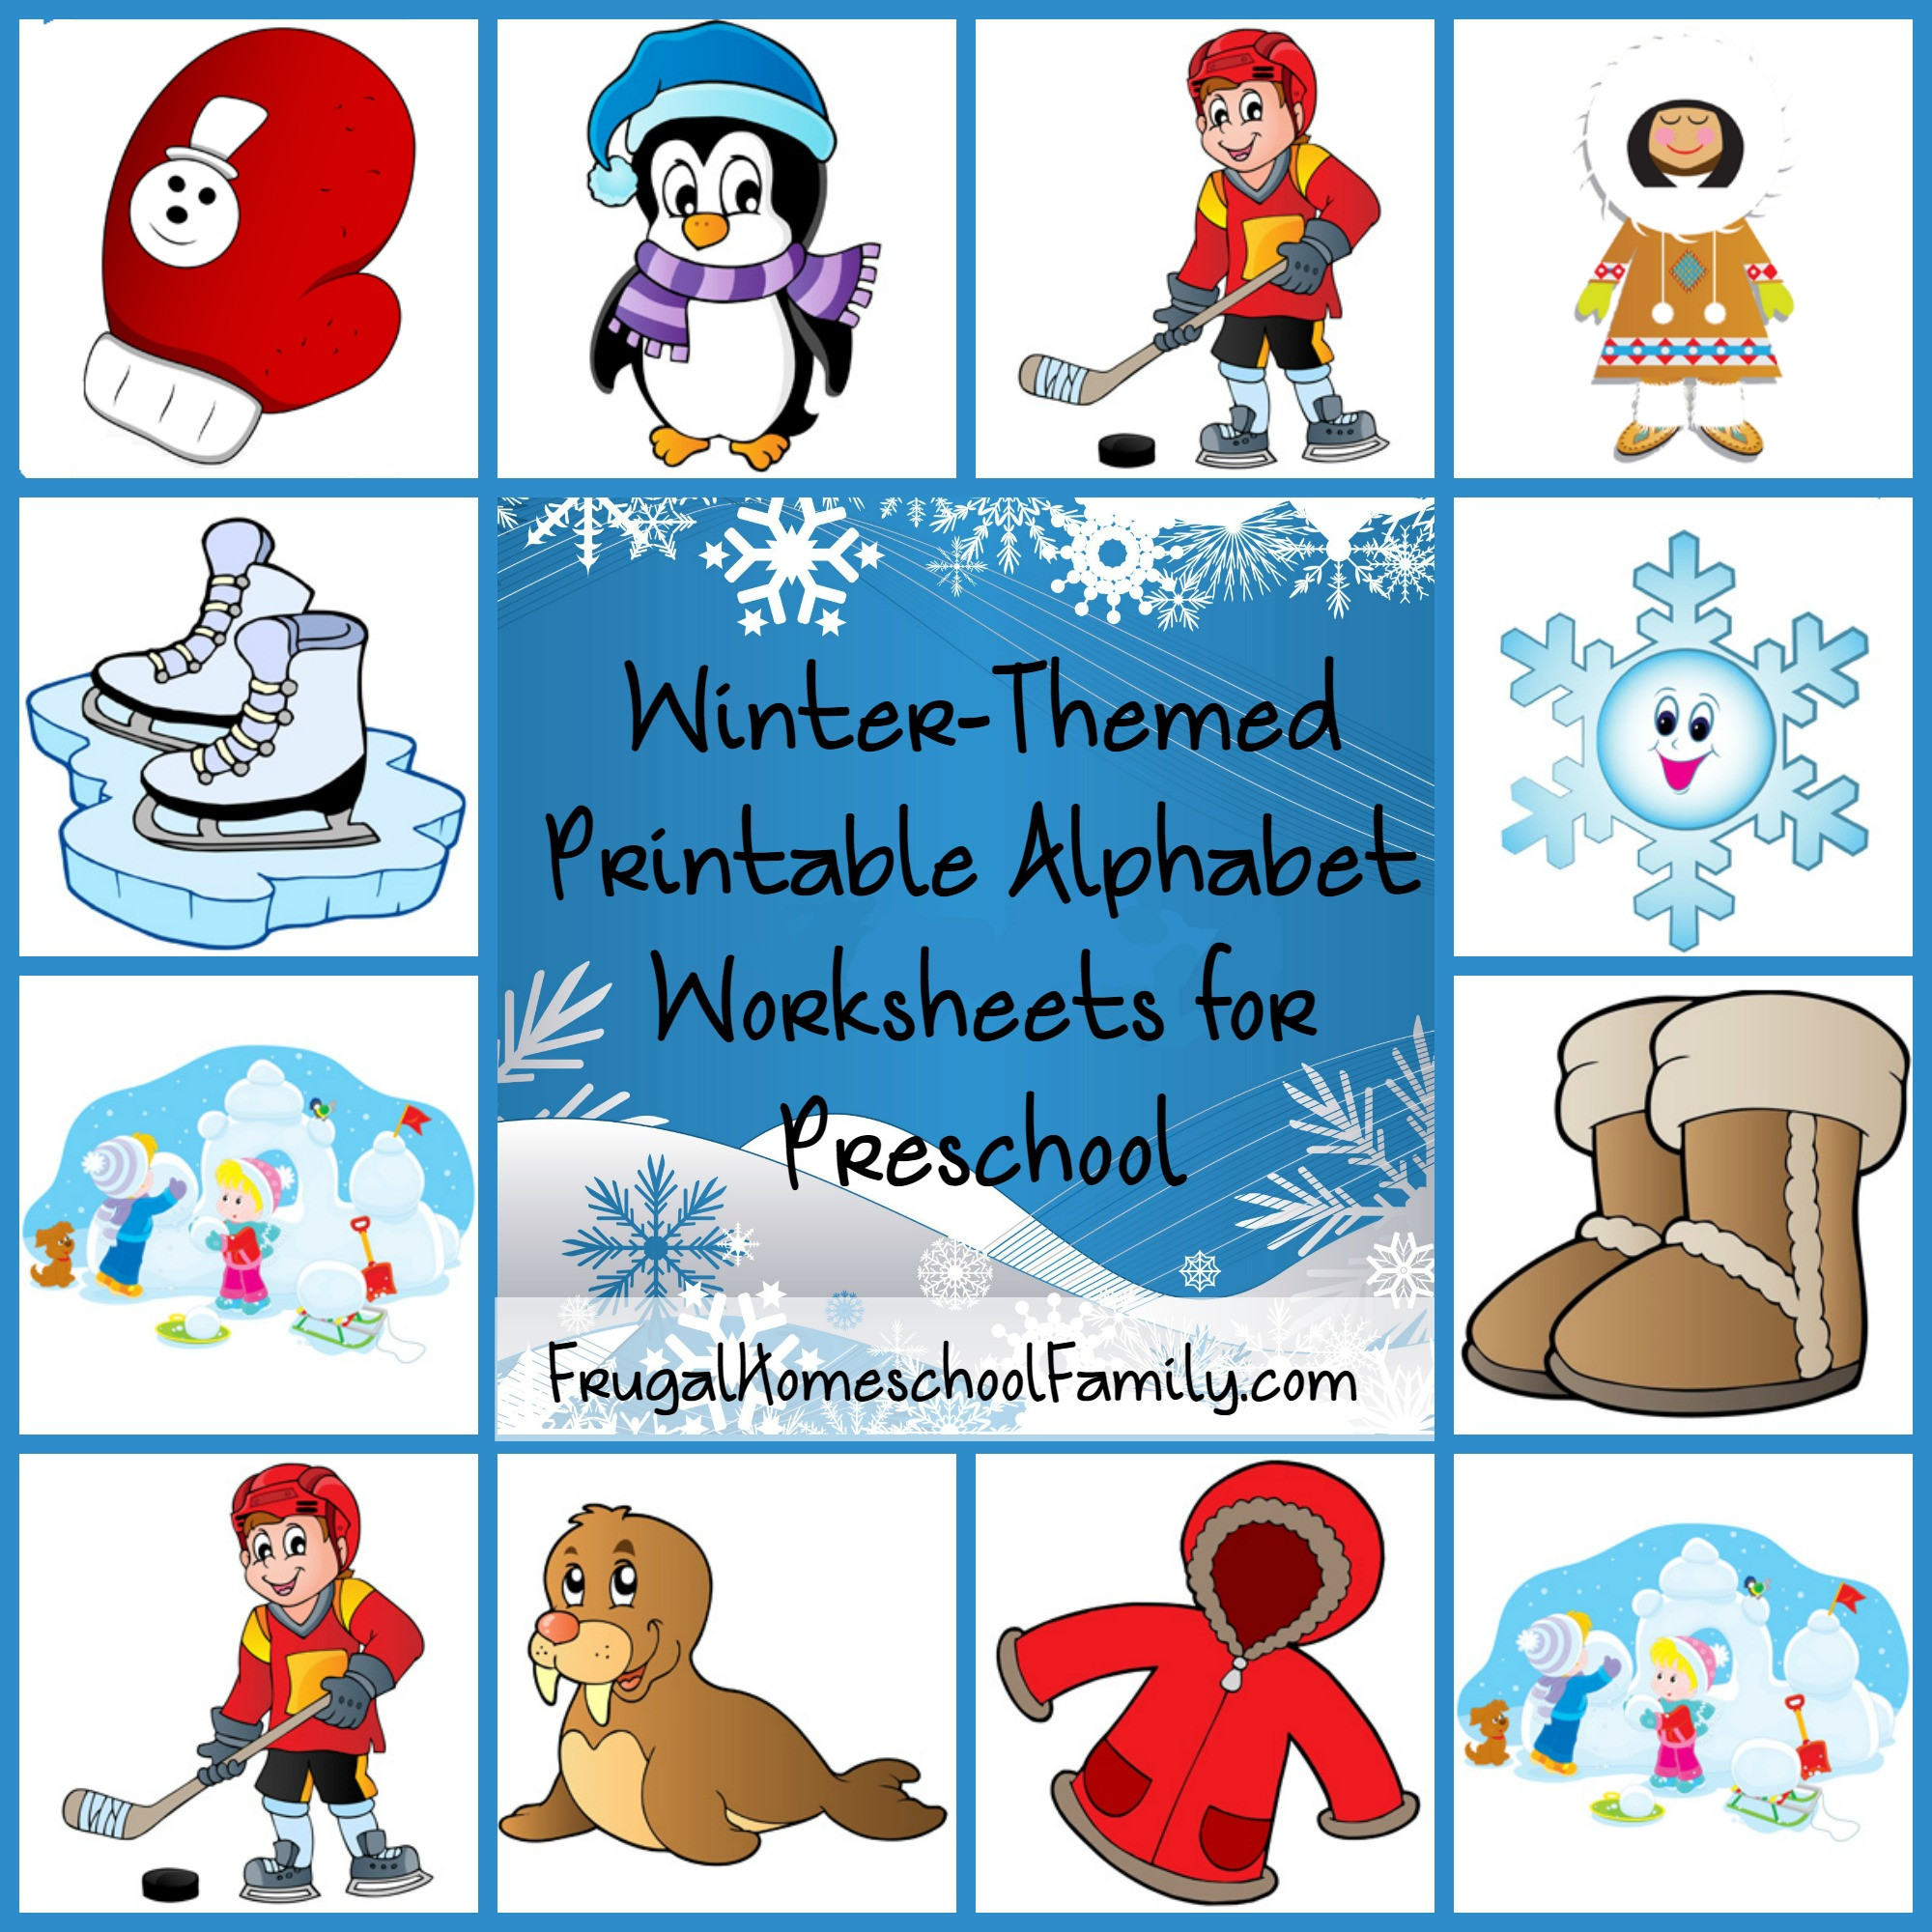 Winter Themed Activities For Preschoolers  Free Winter Themed Printable Alphabet Worksheets for